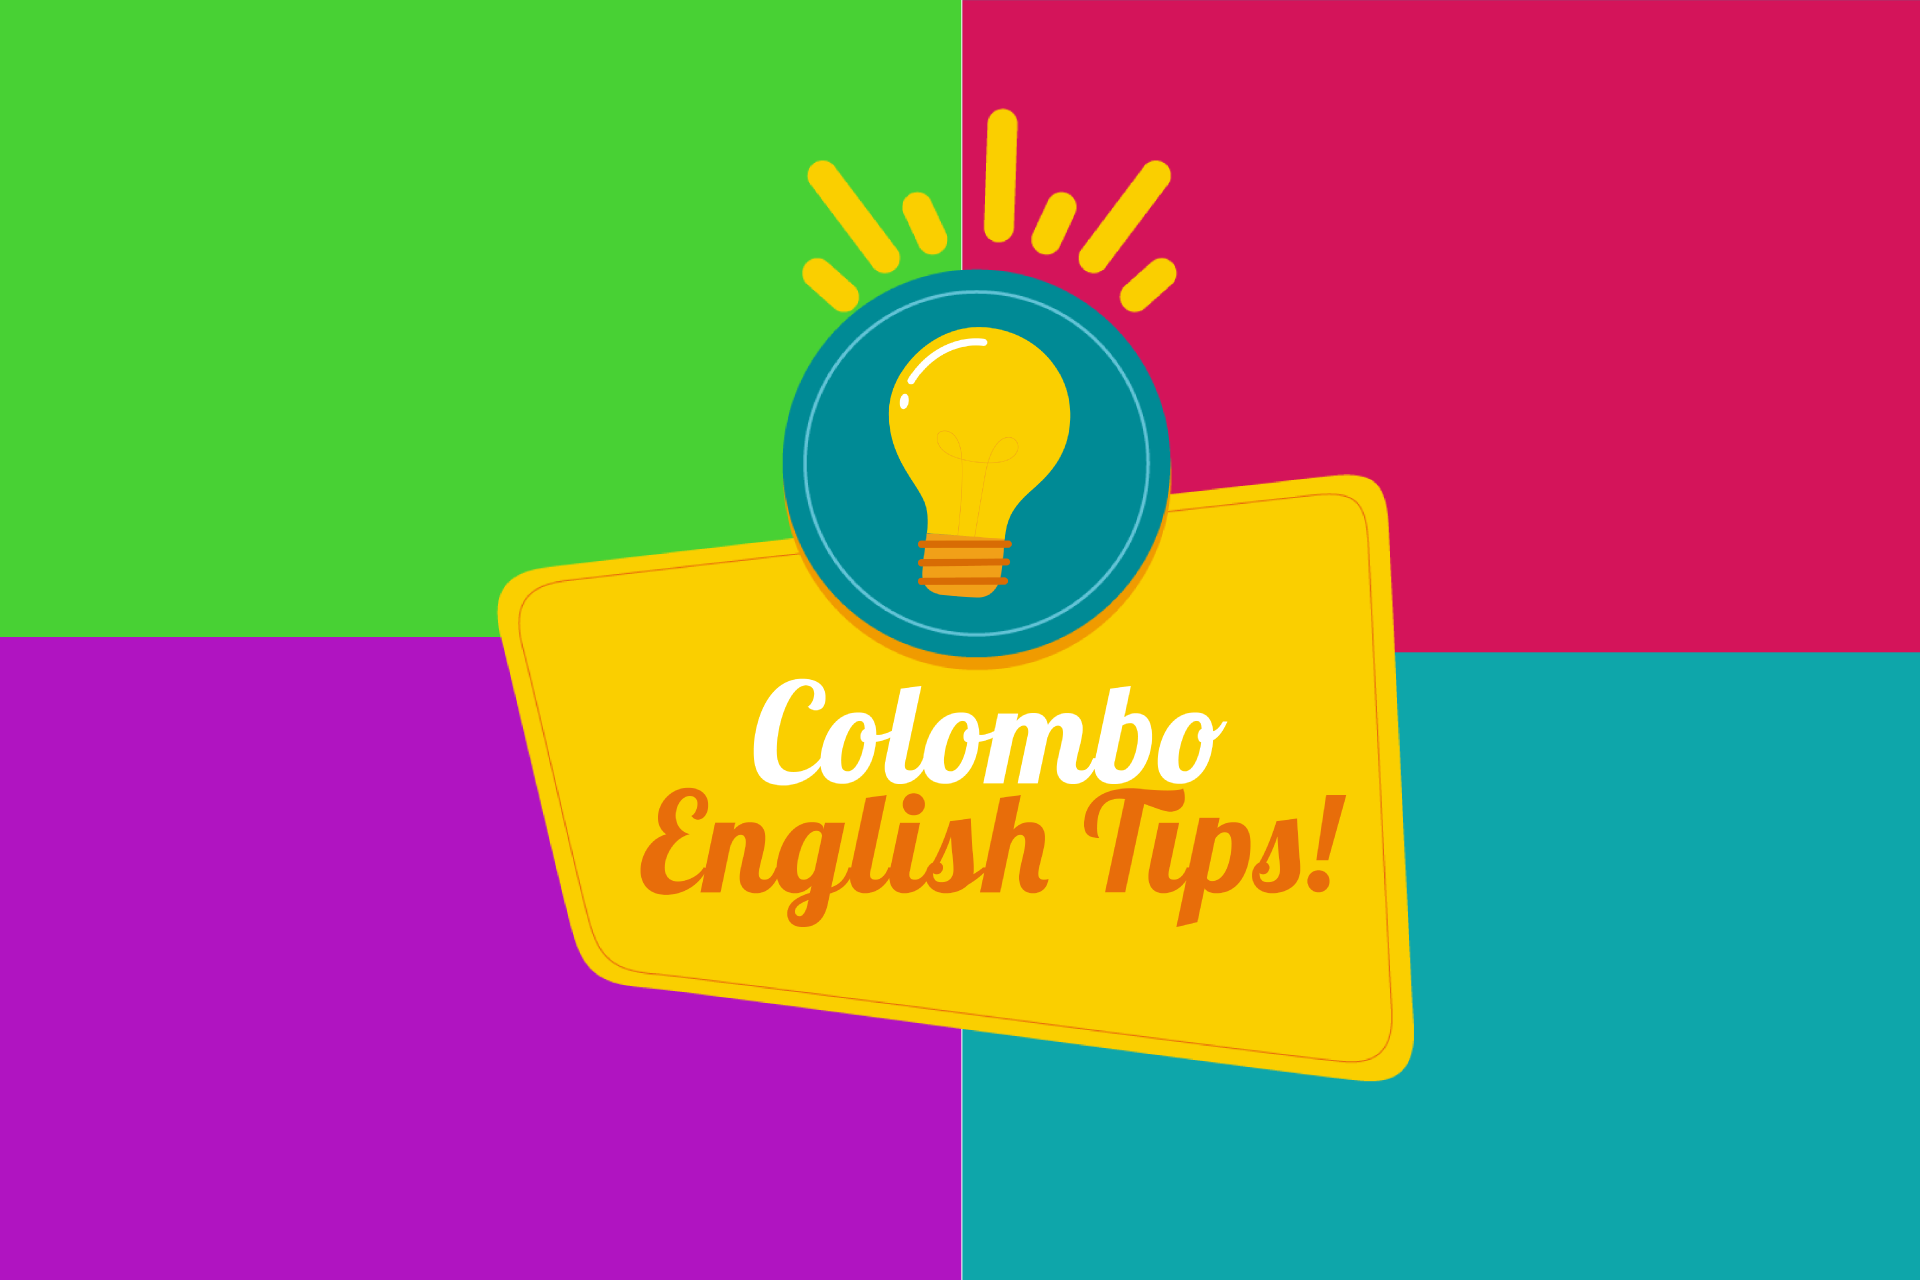 Colombo English Tips